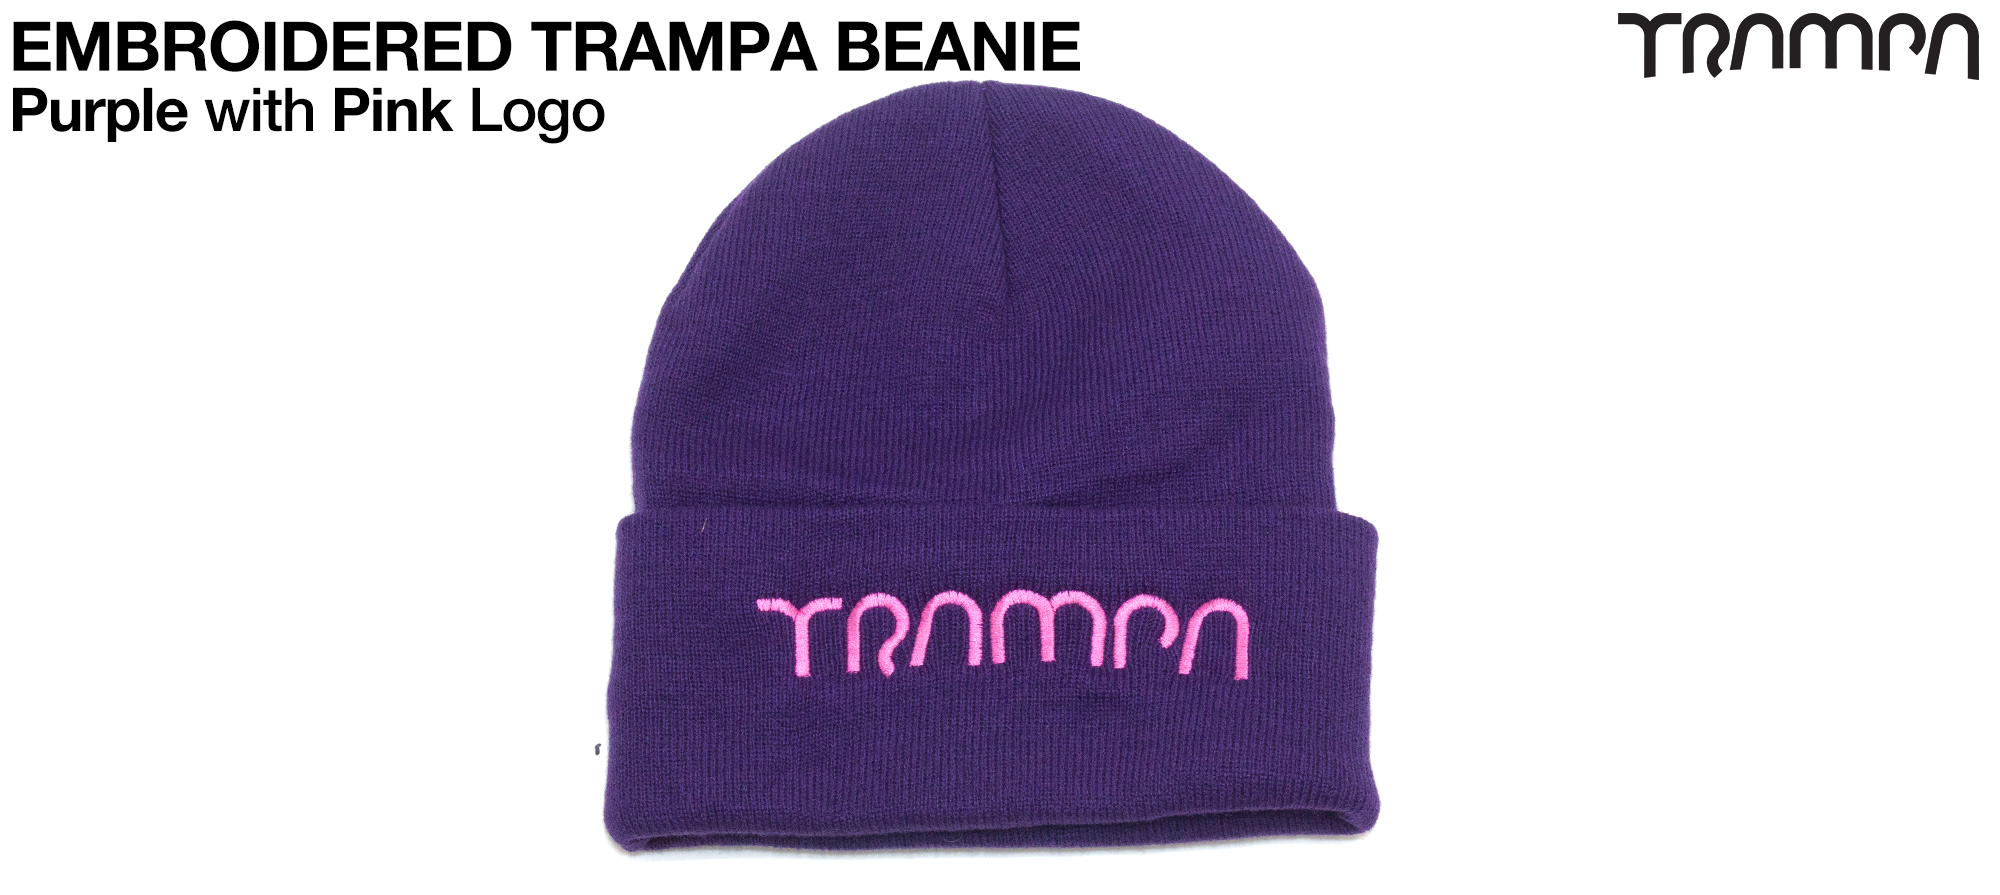 PURPLE Woolie hat with PINK TRAMPA logo